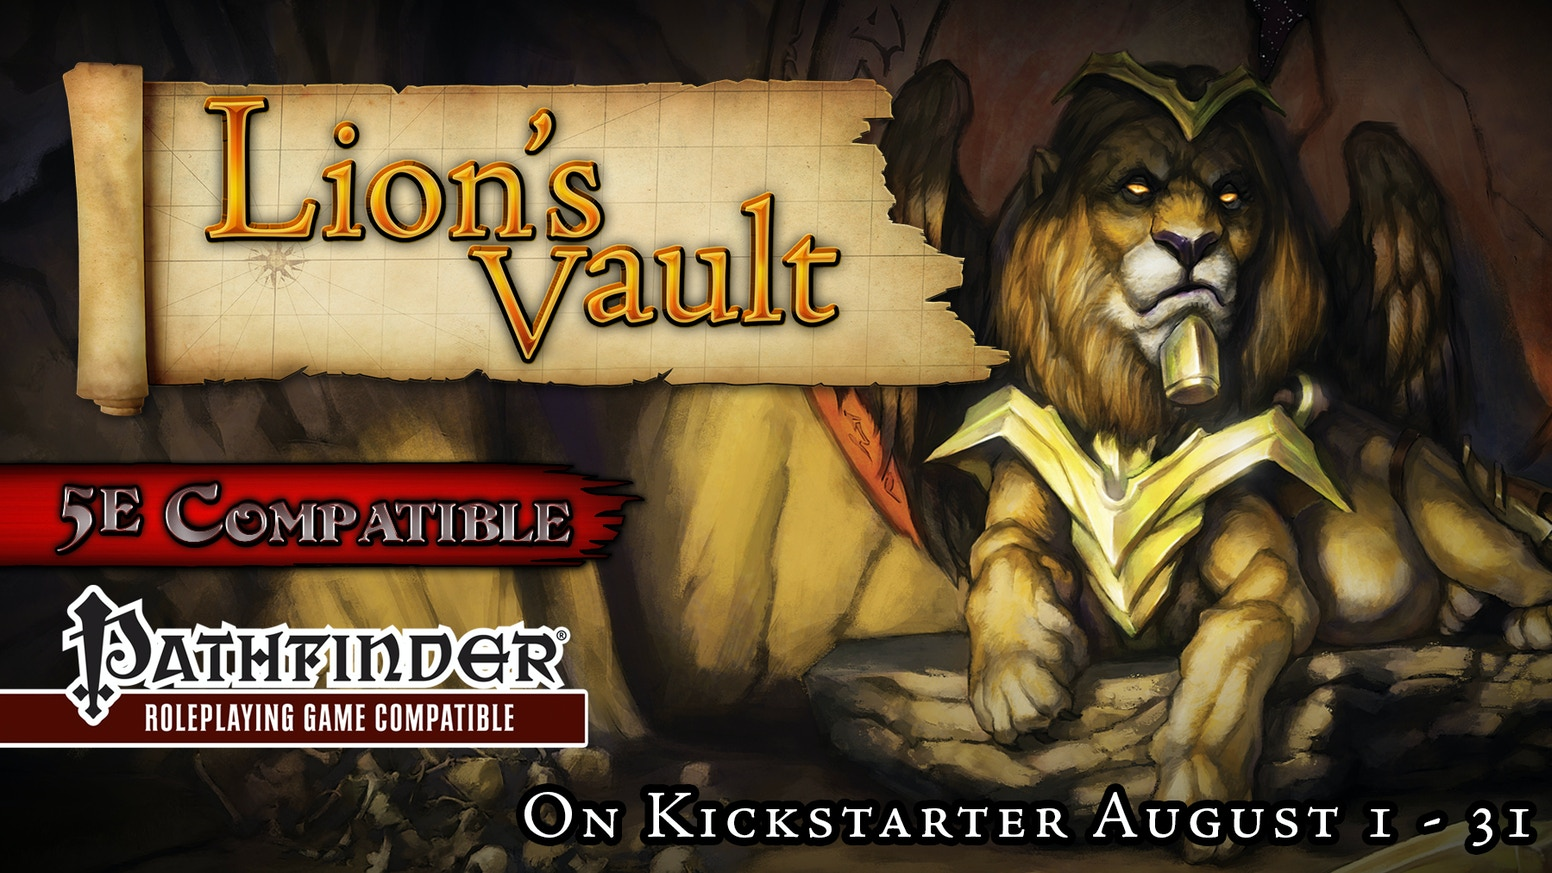 The Lion's Vault - Part 3 of the Fate of the Forebears adventure path for 5th Edition D&D and Pathfinder RPG.